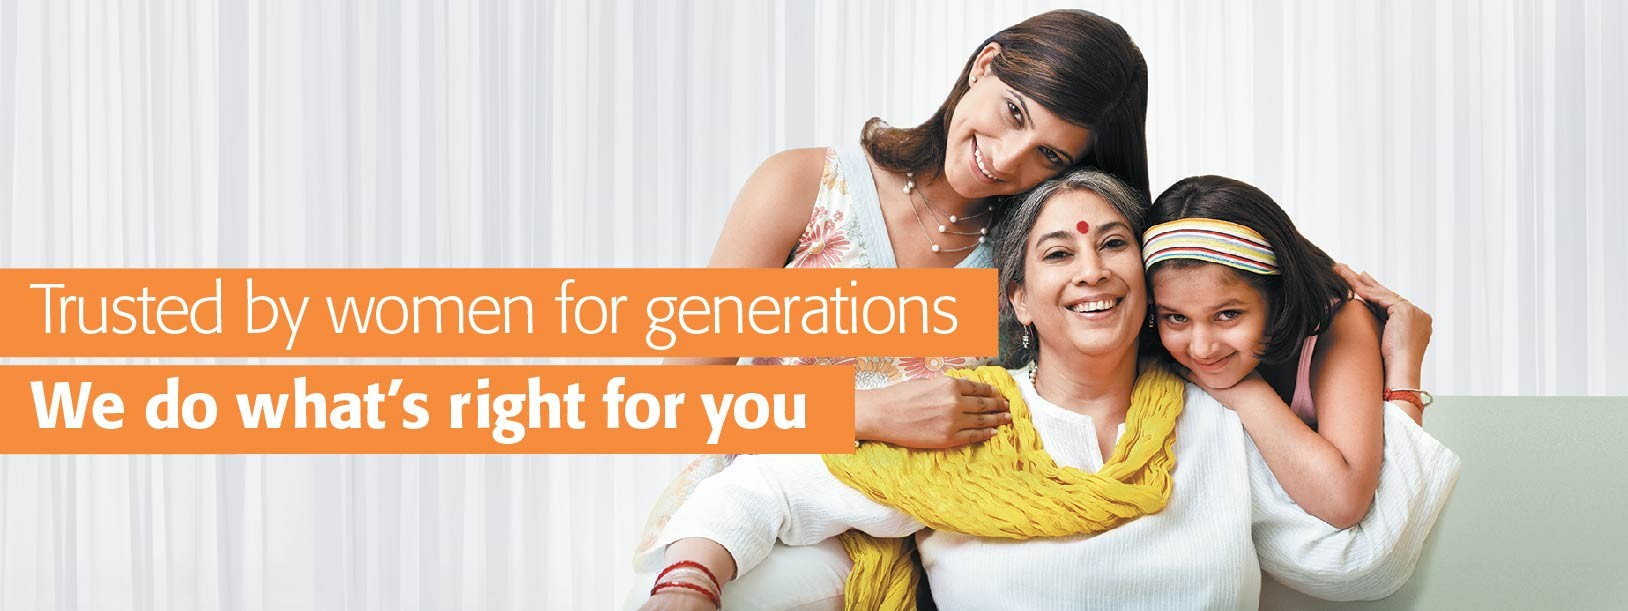 Trusted by women for generations because we do what's right for you